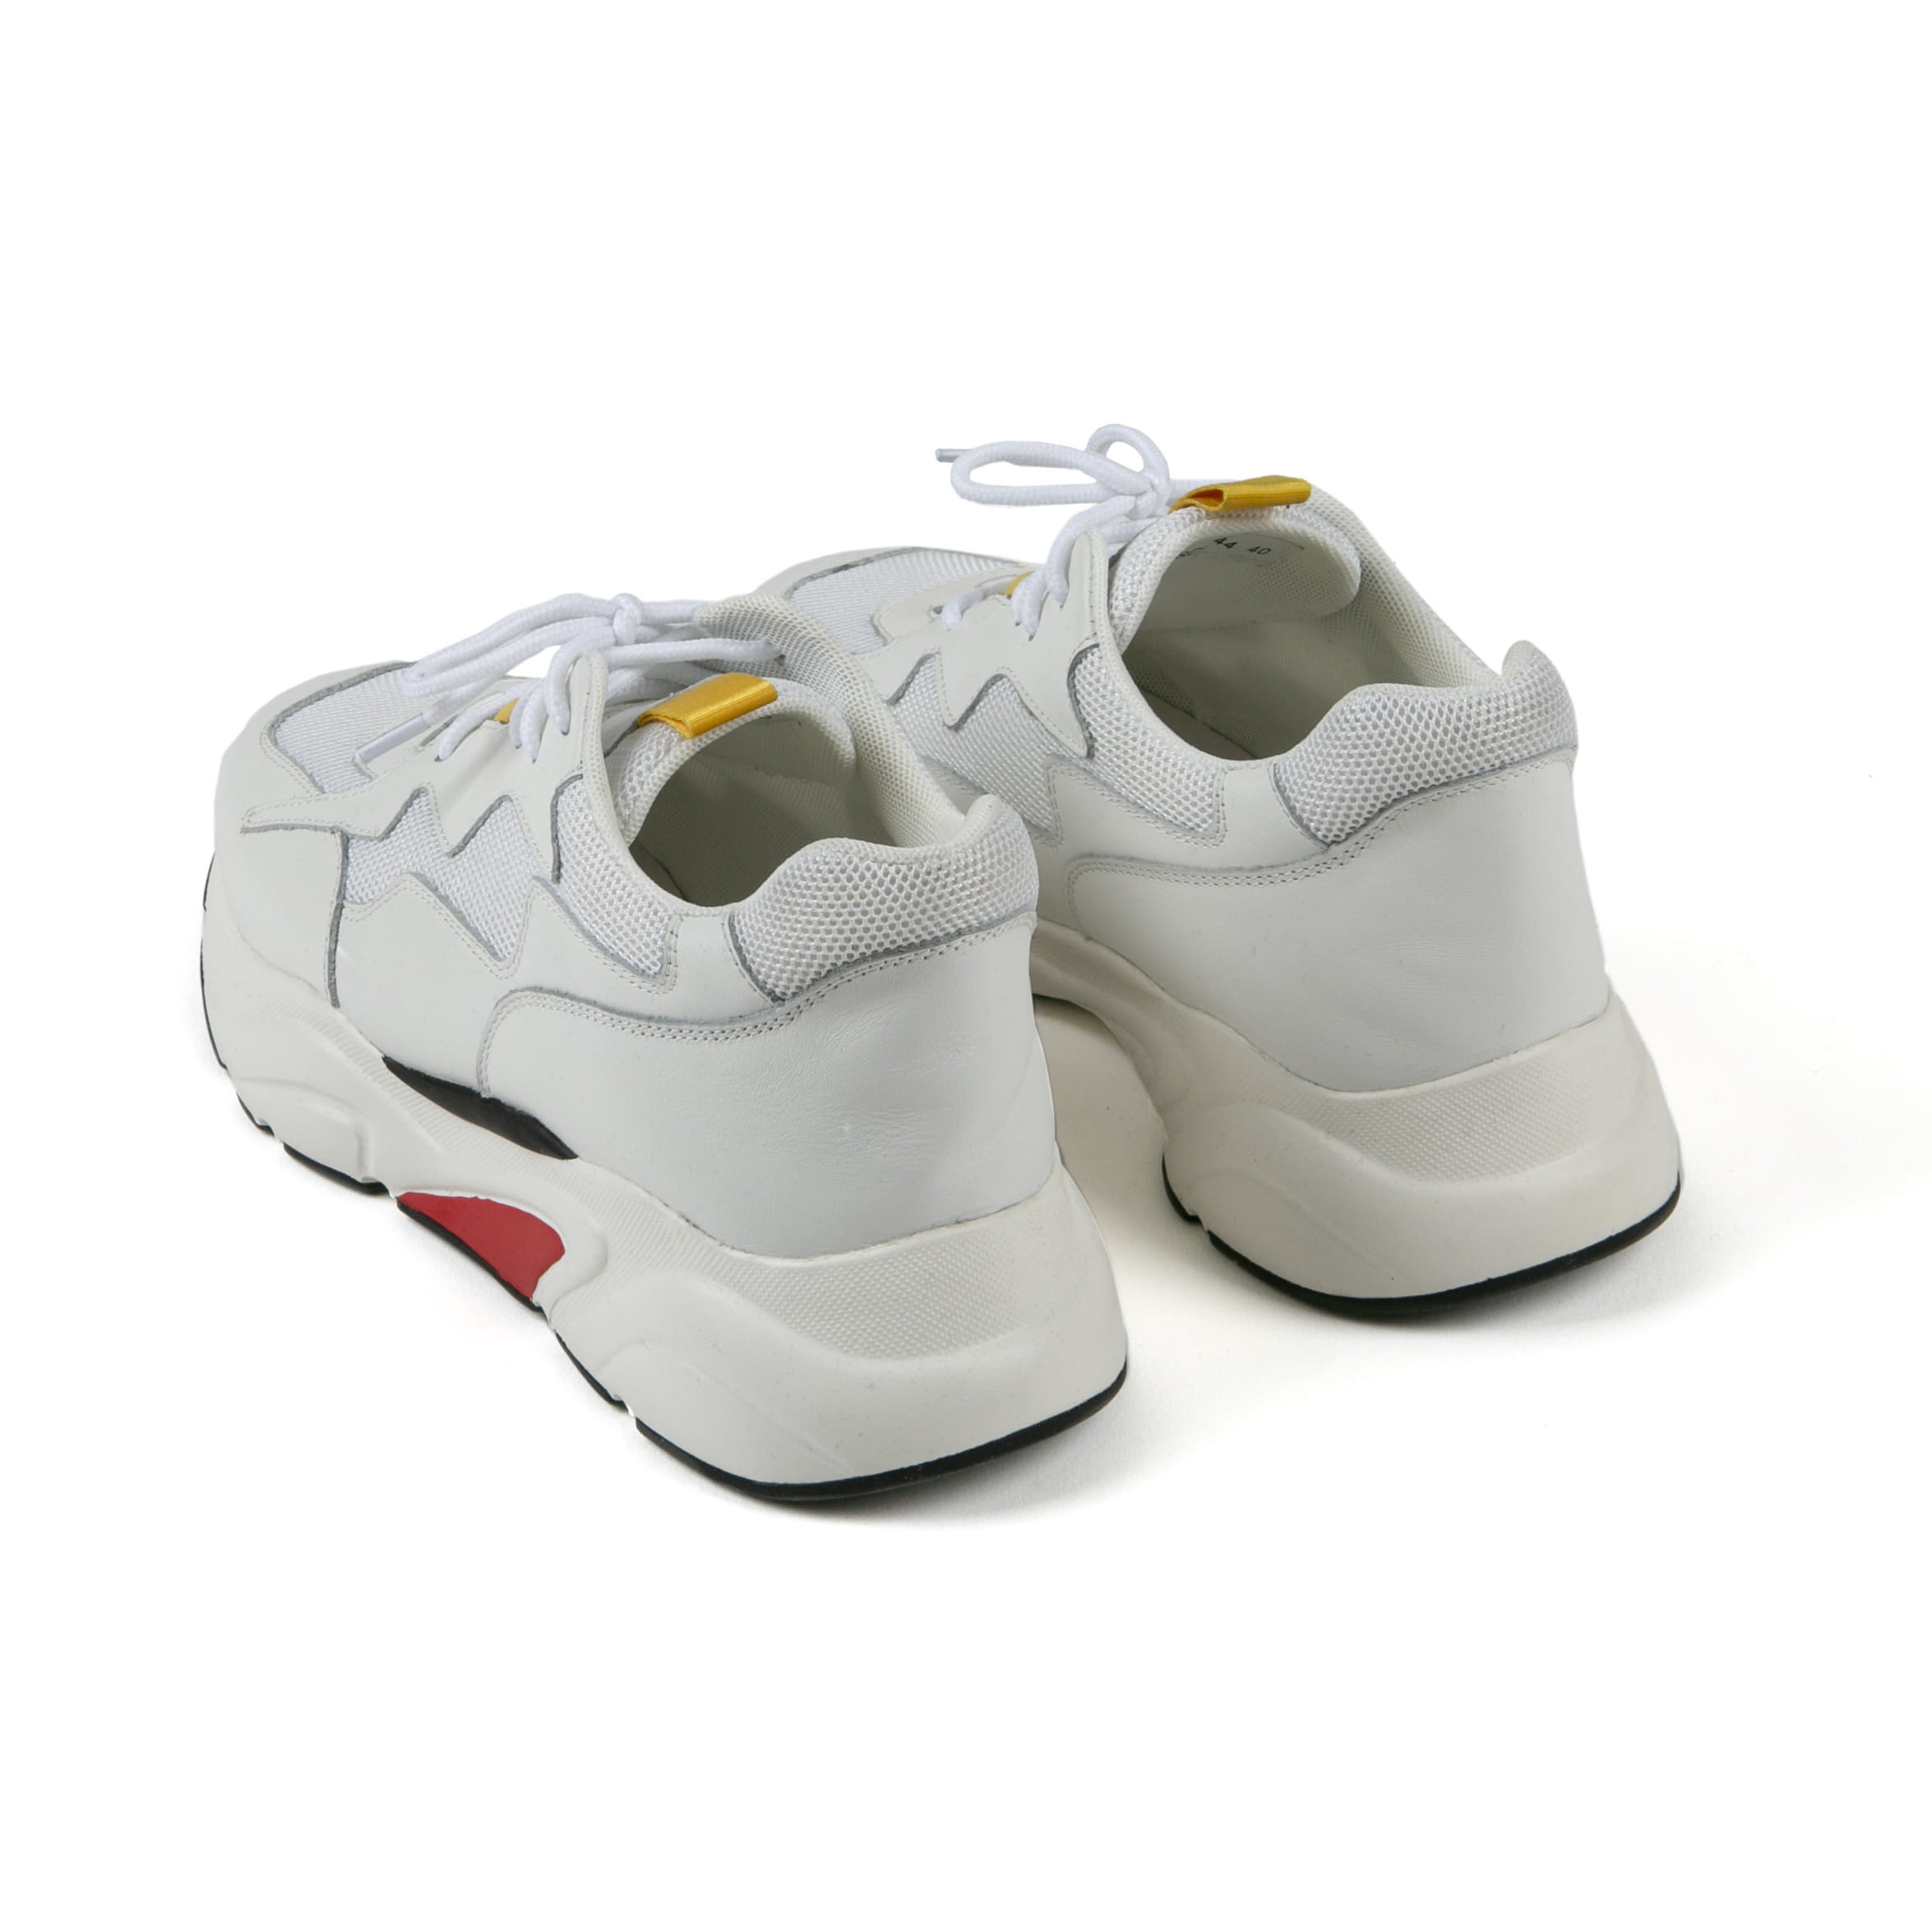 19SS MM Runner sneakers MXASC9344